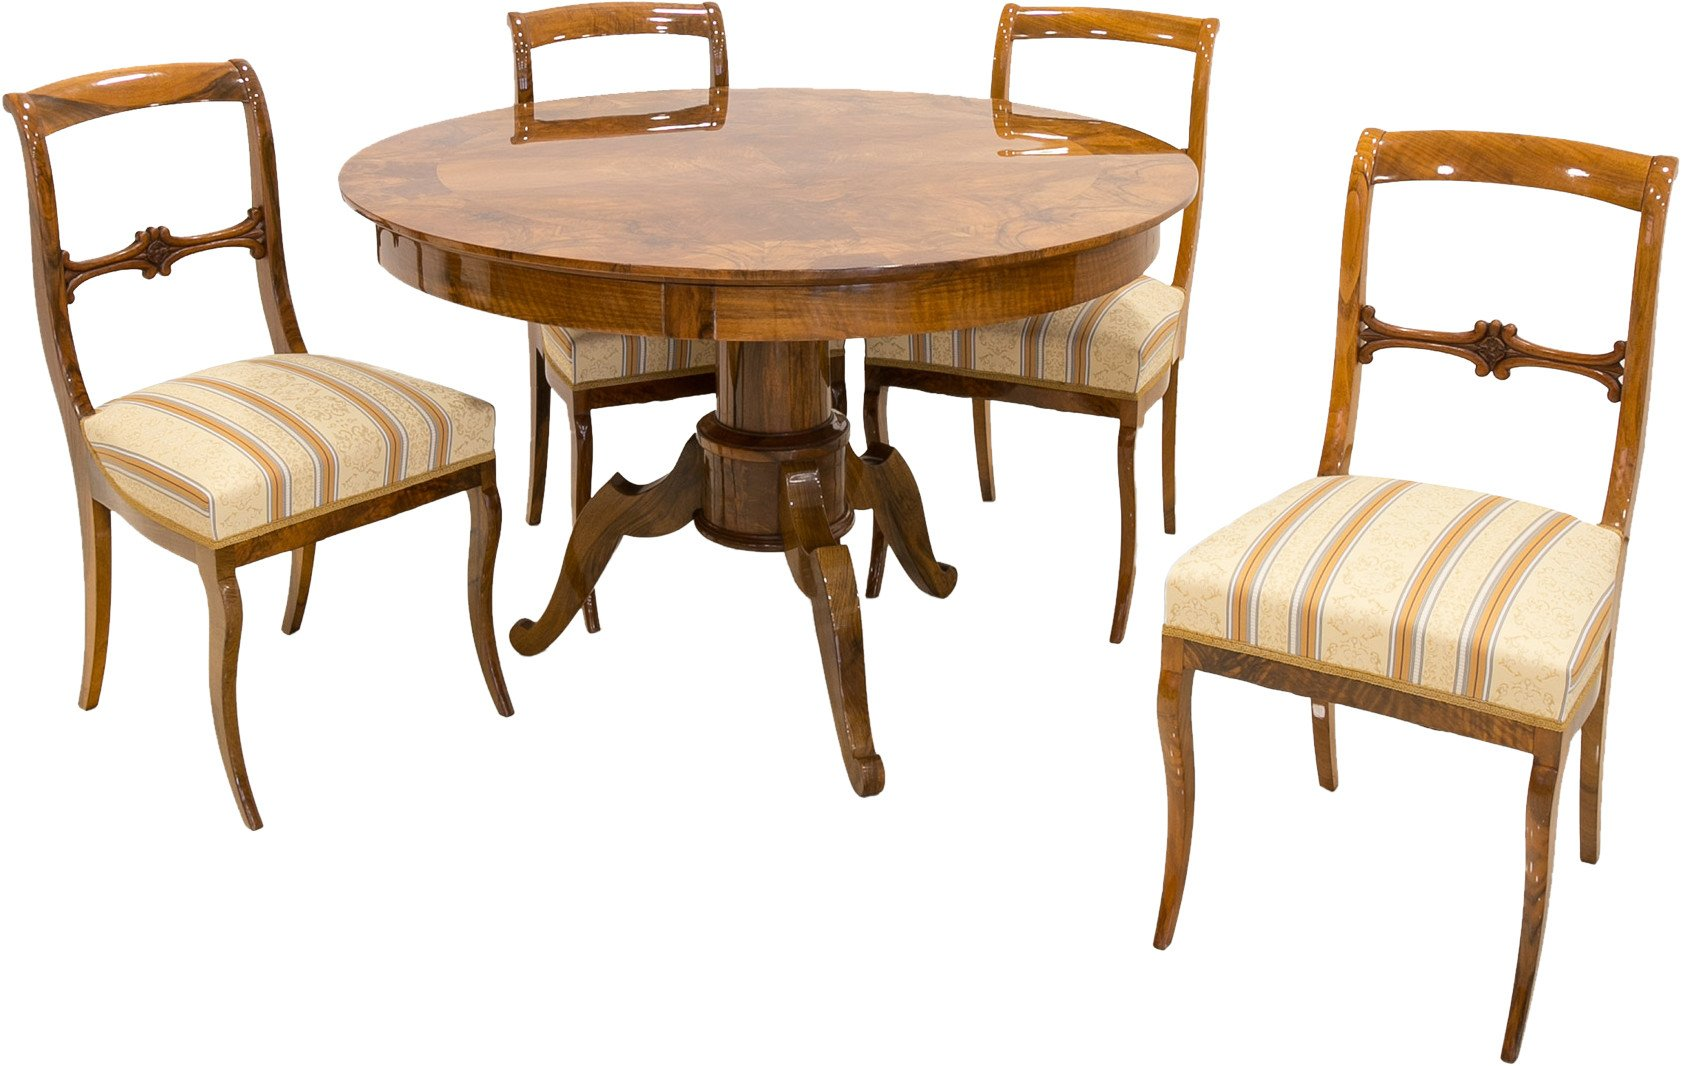 Set of Table with Four Chairs, Germany, 1st half 19th C.